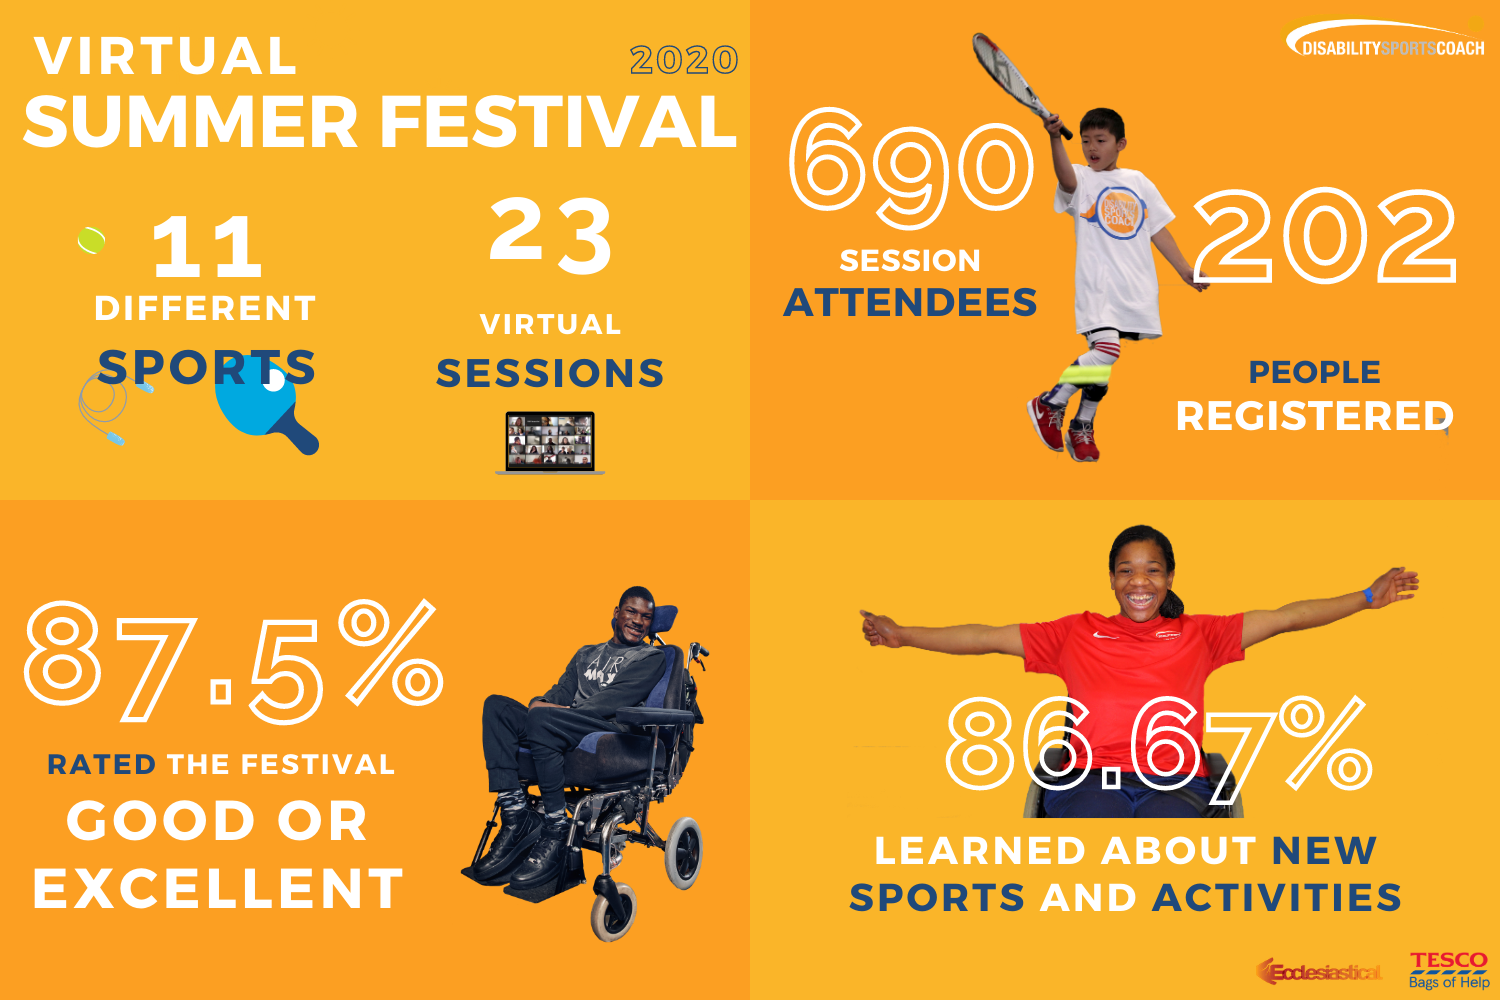 Statistics from our Virtual Summer Festival 2020